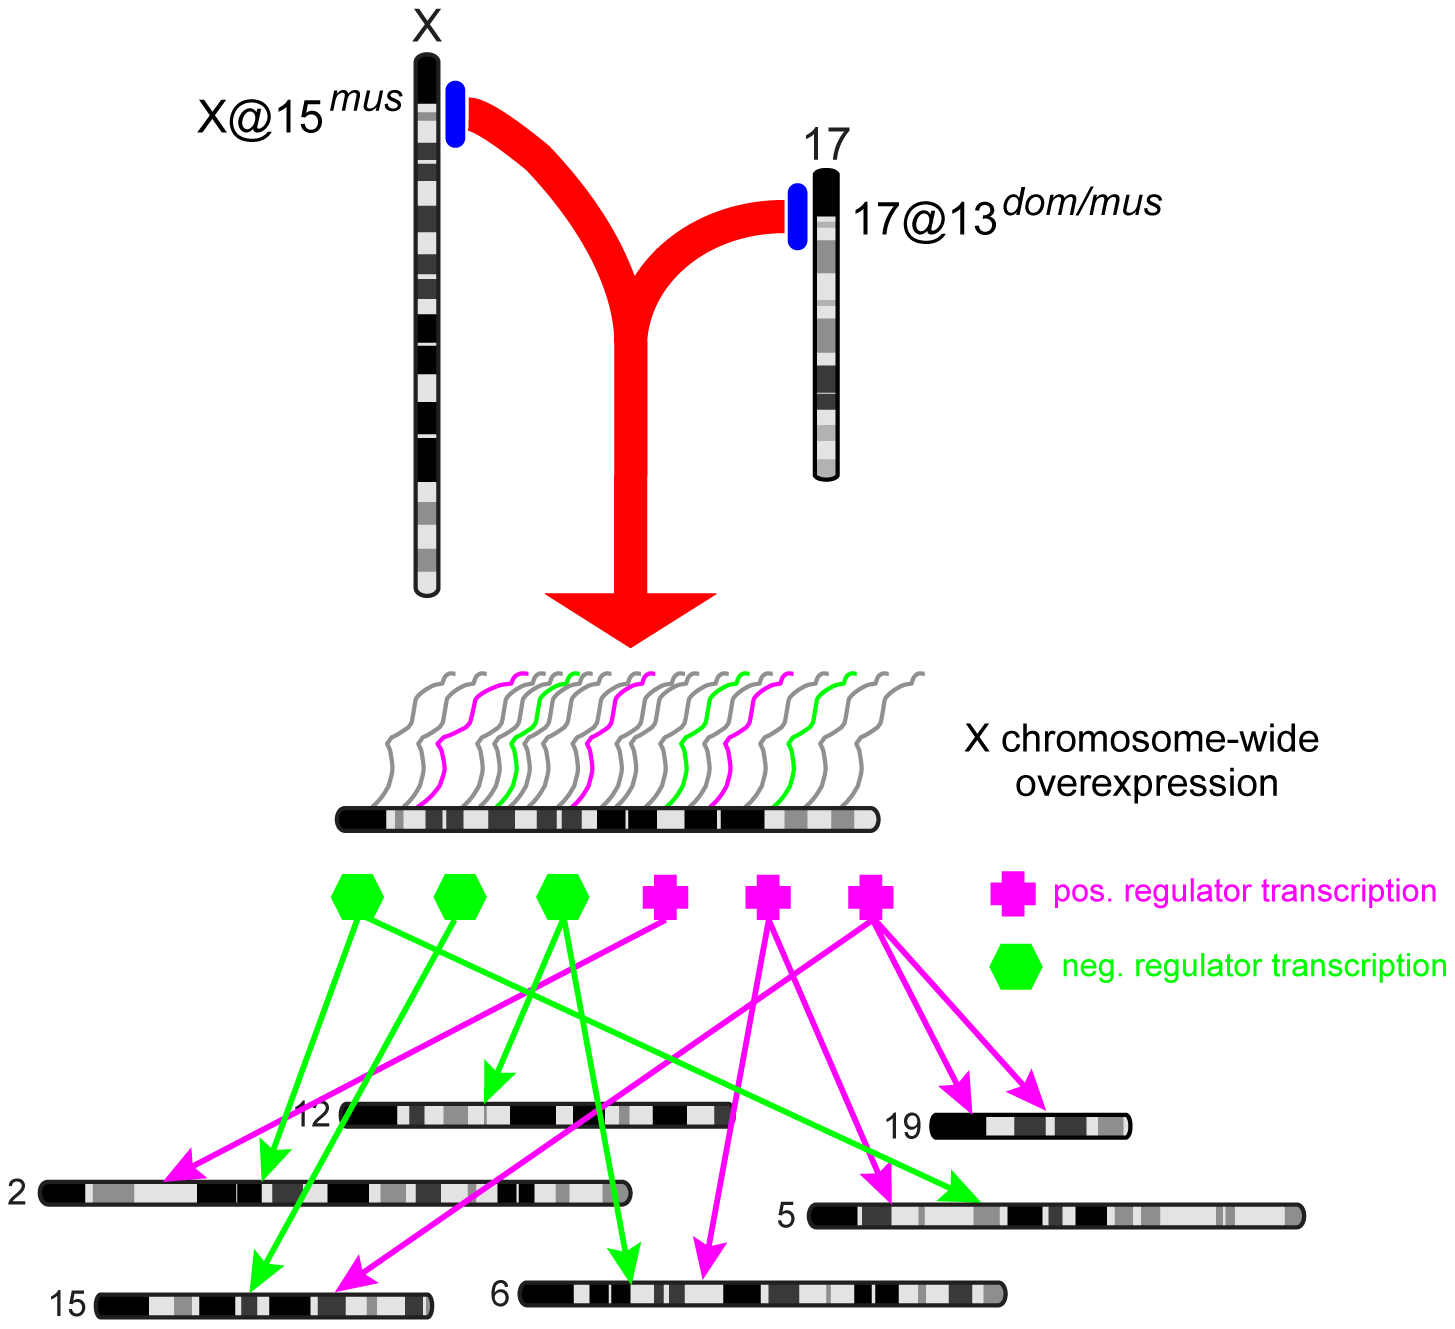 Model of genome-wide expression effects caused by X-17 interaction.